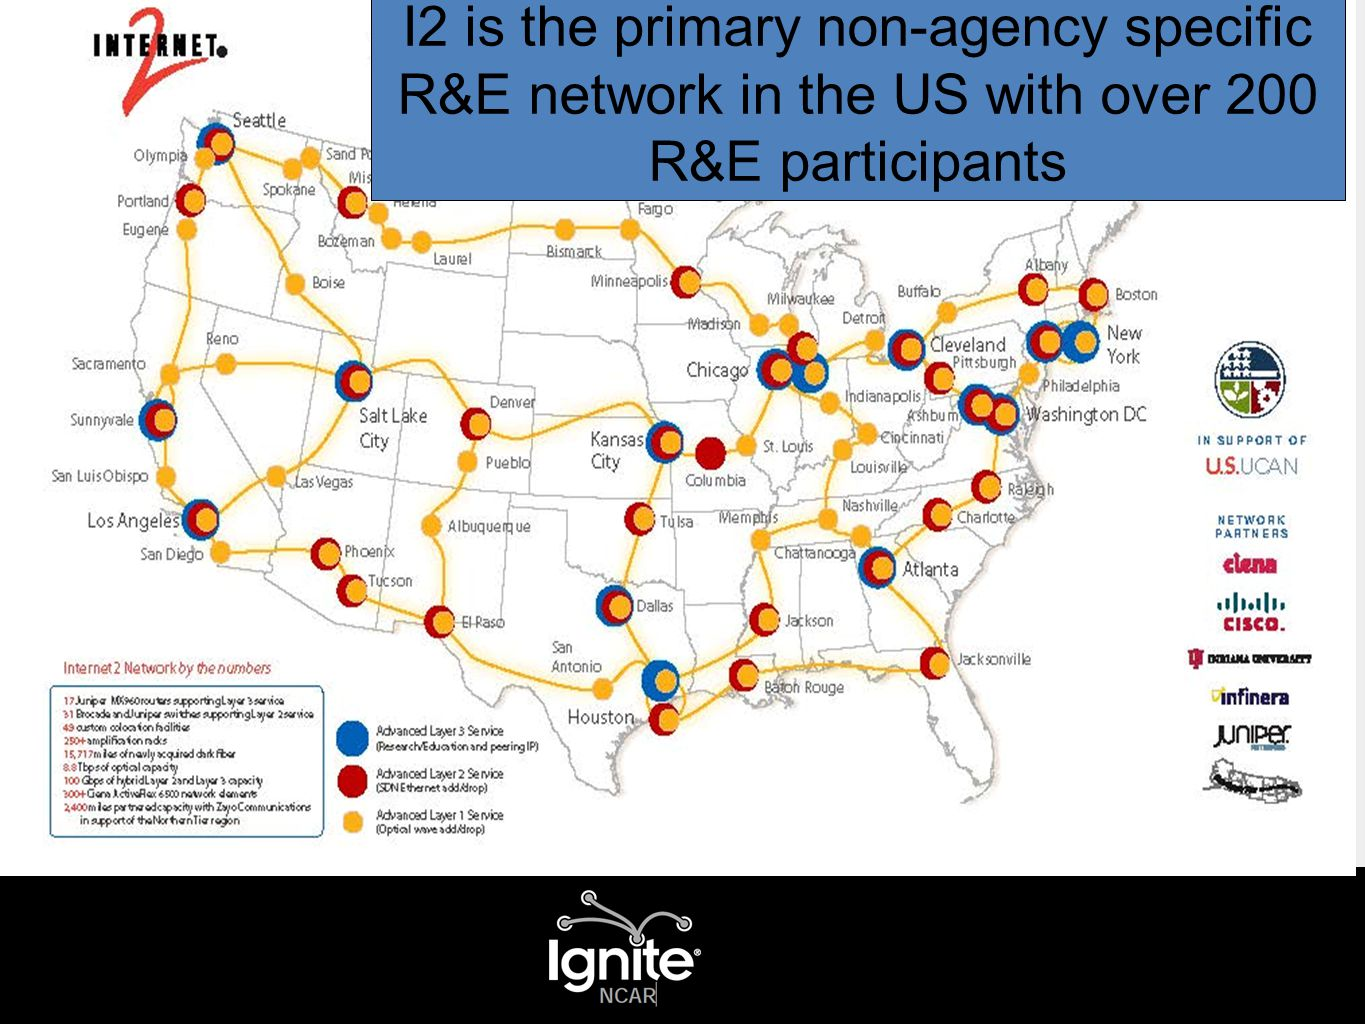 I2 is the primary non-agency specific R&E network in the US with over 200 R&E participants